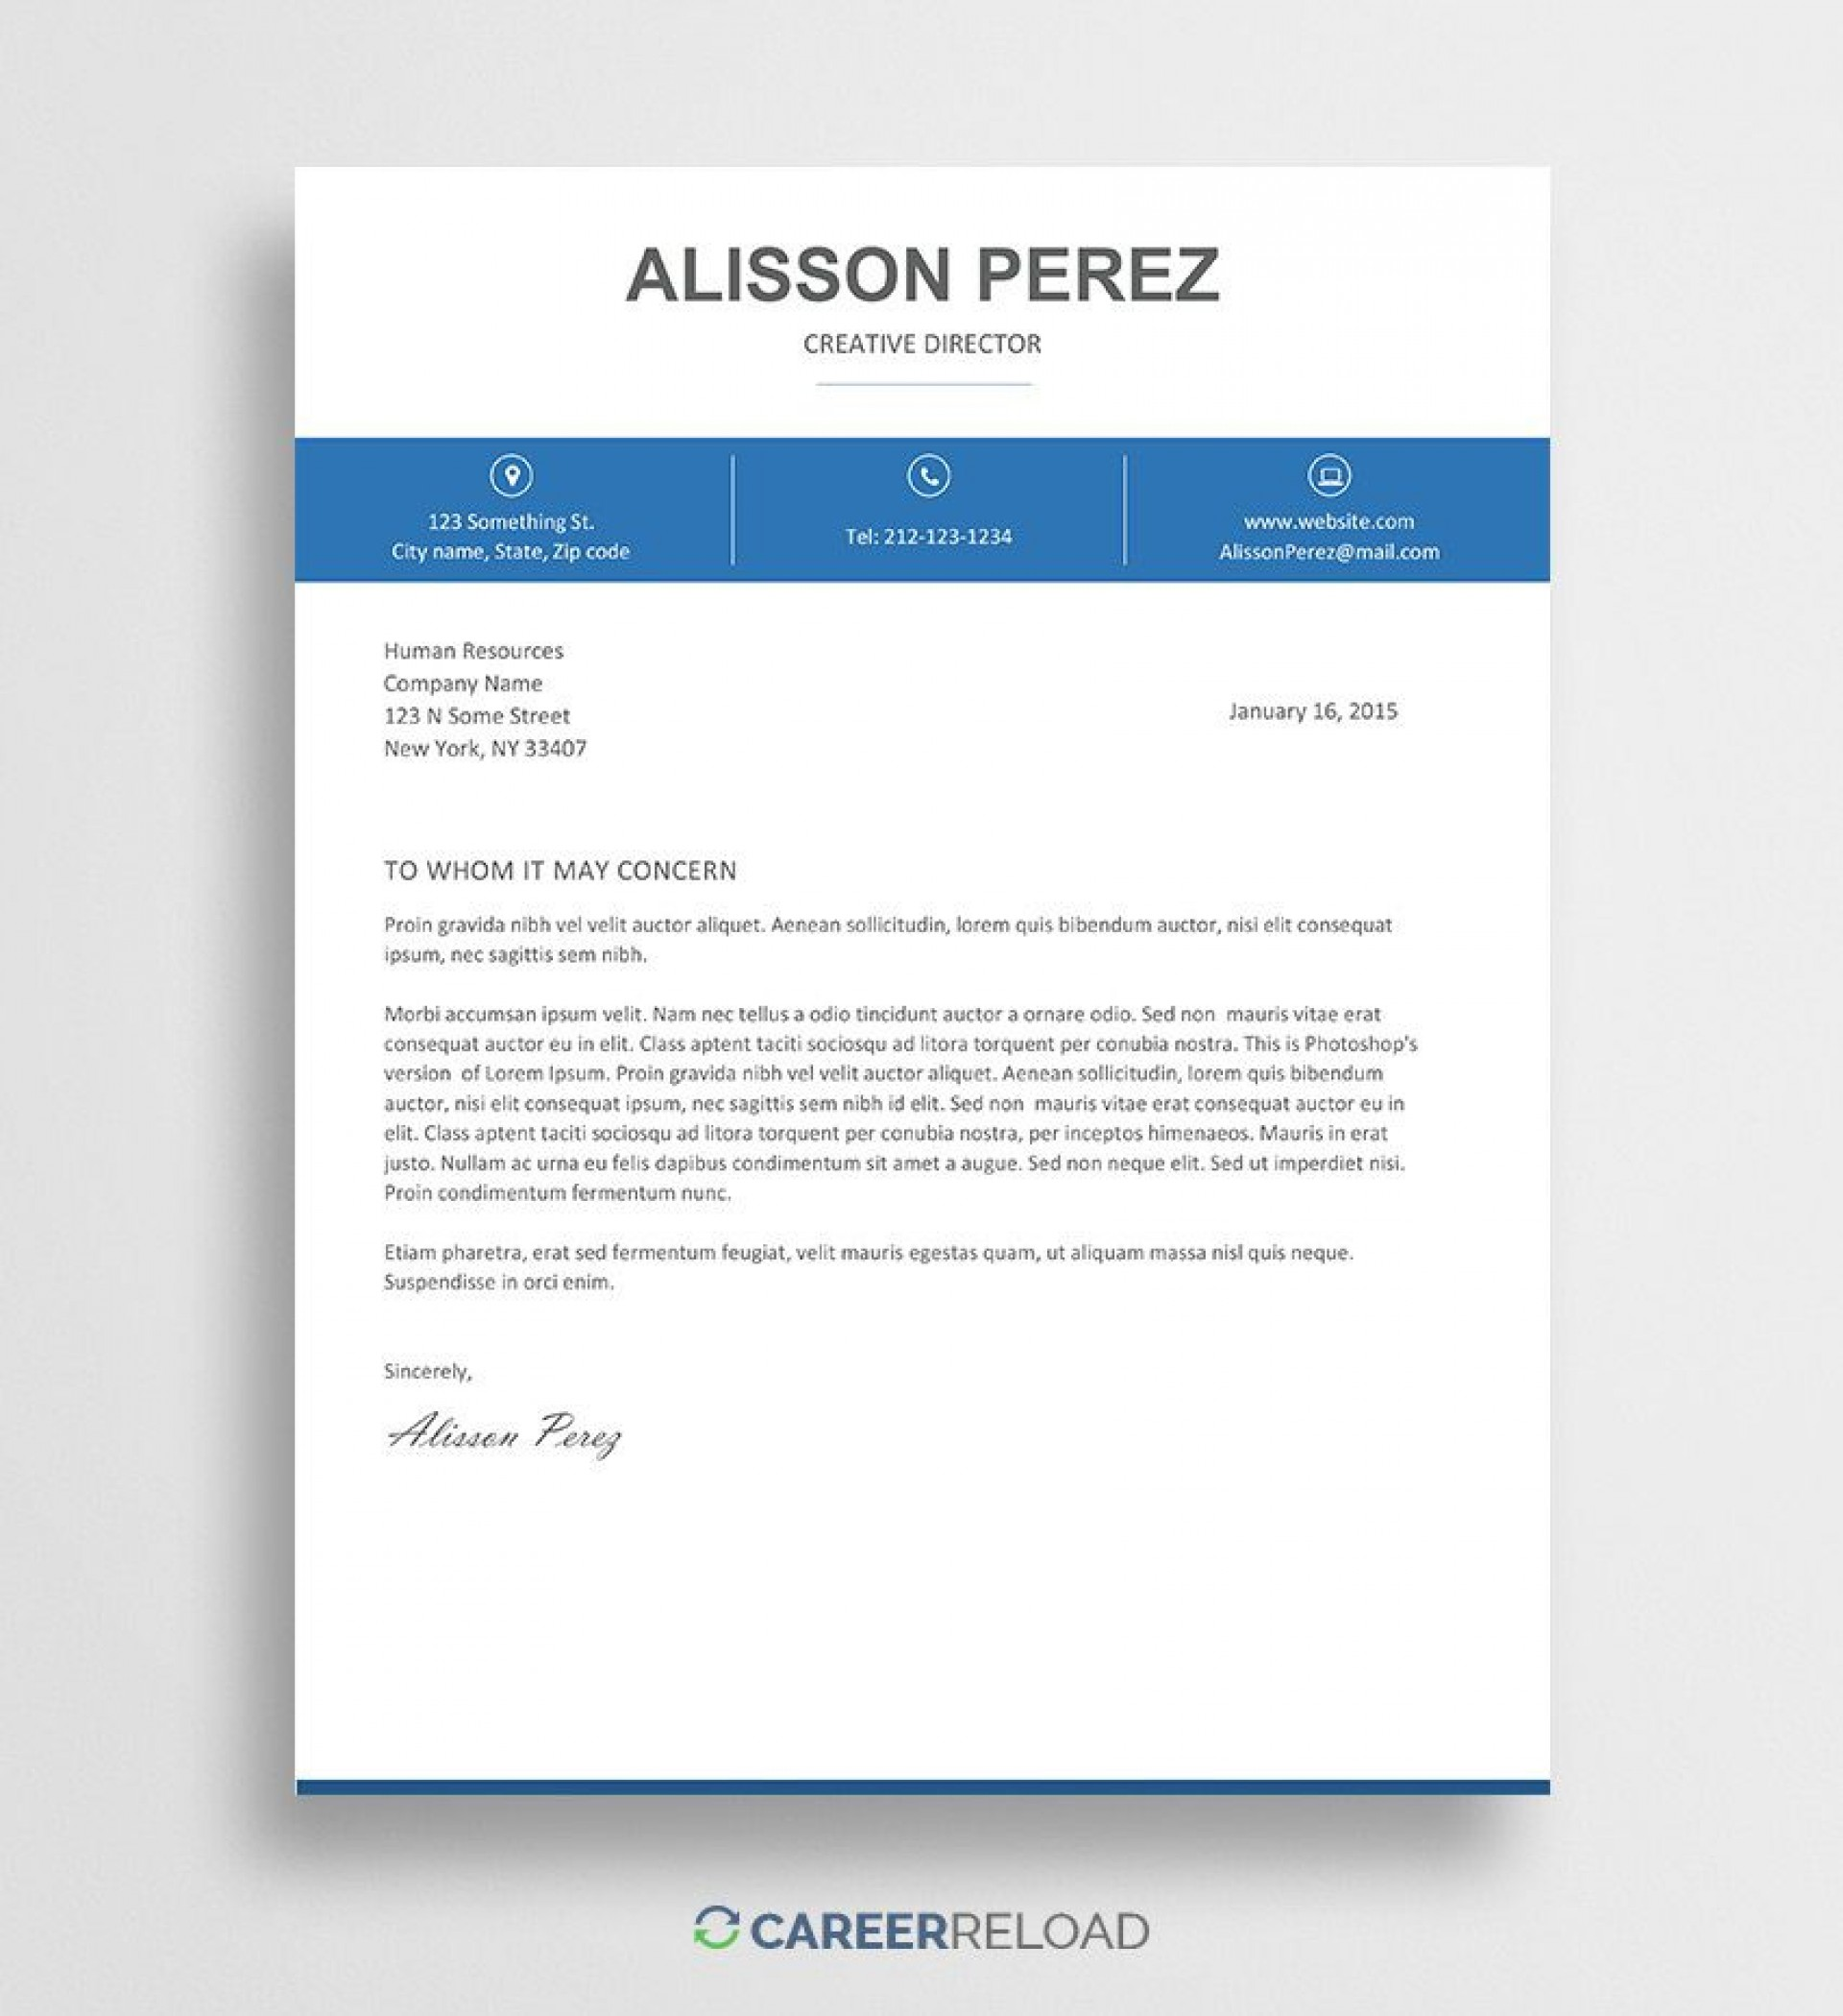 004 Archaicawful Download Cover Letter Template In Microsoft Word Highest Clarity  Free Creative Resume1920